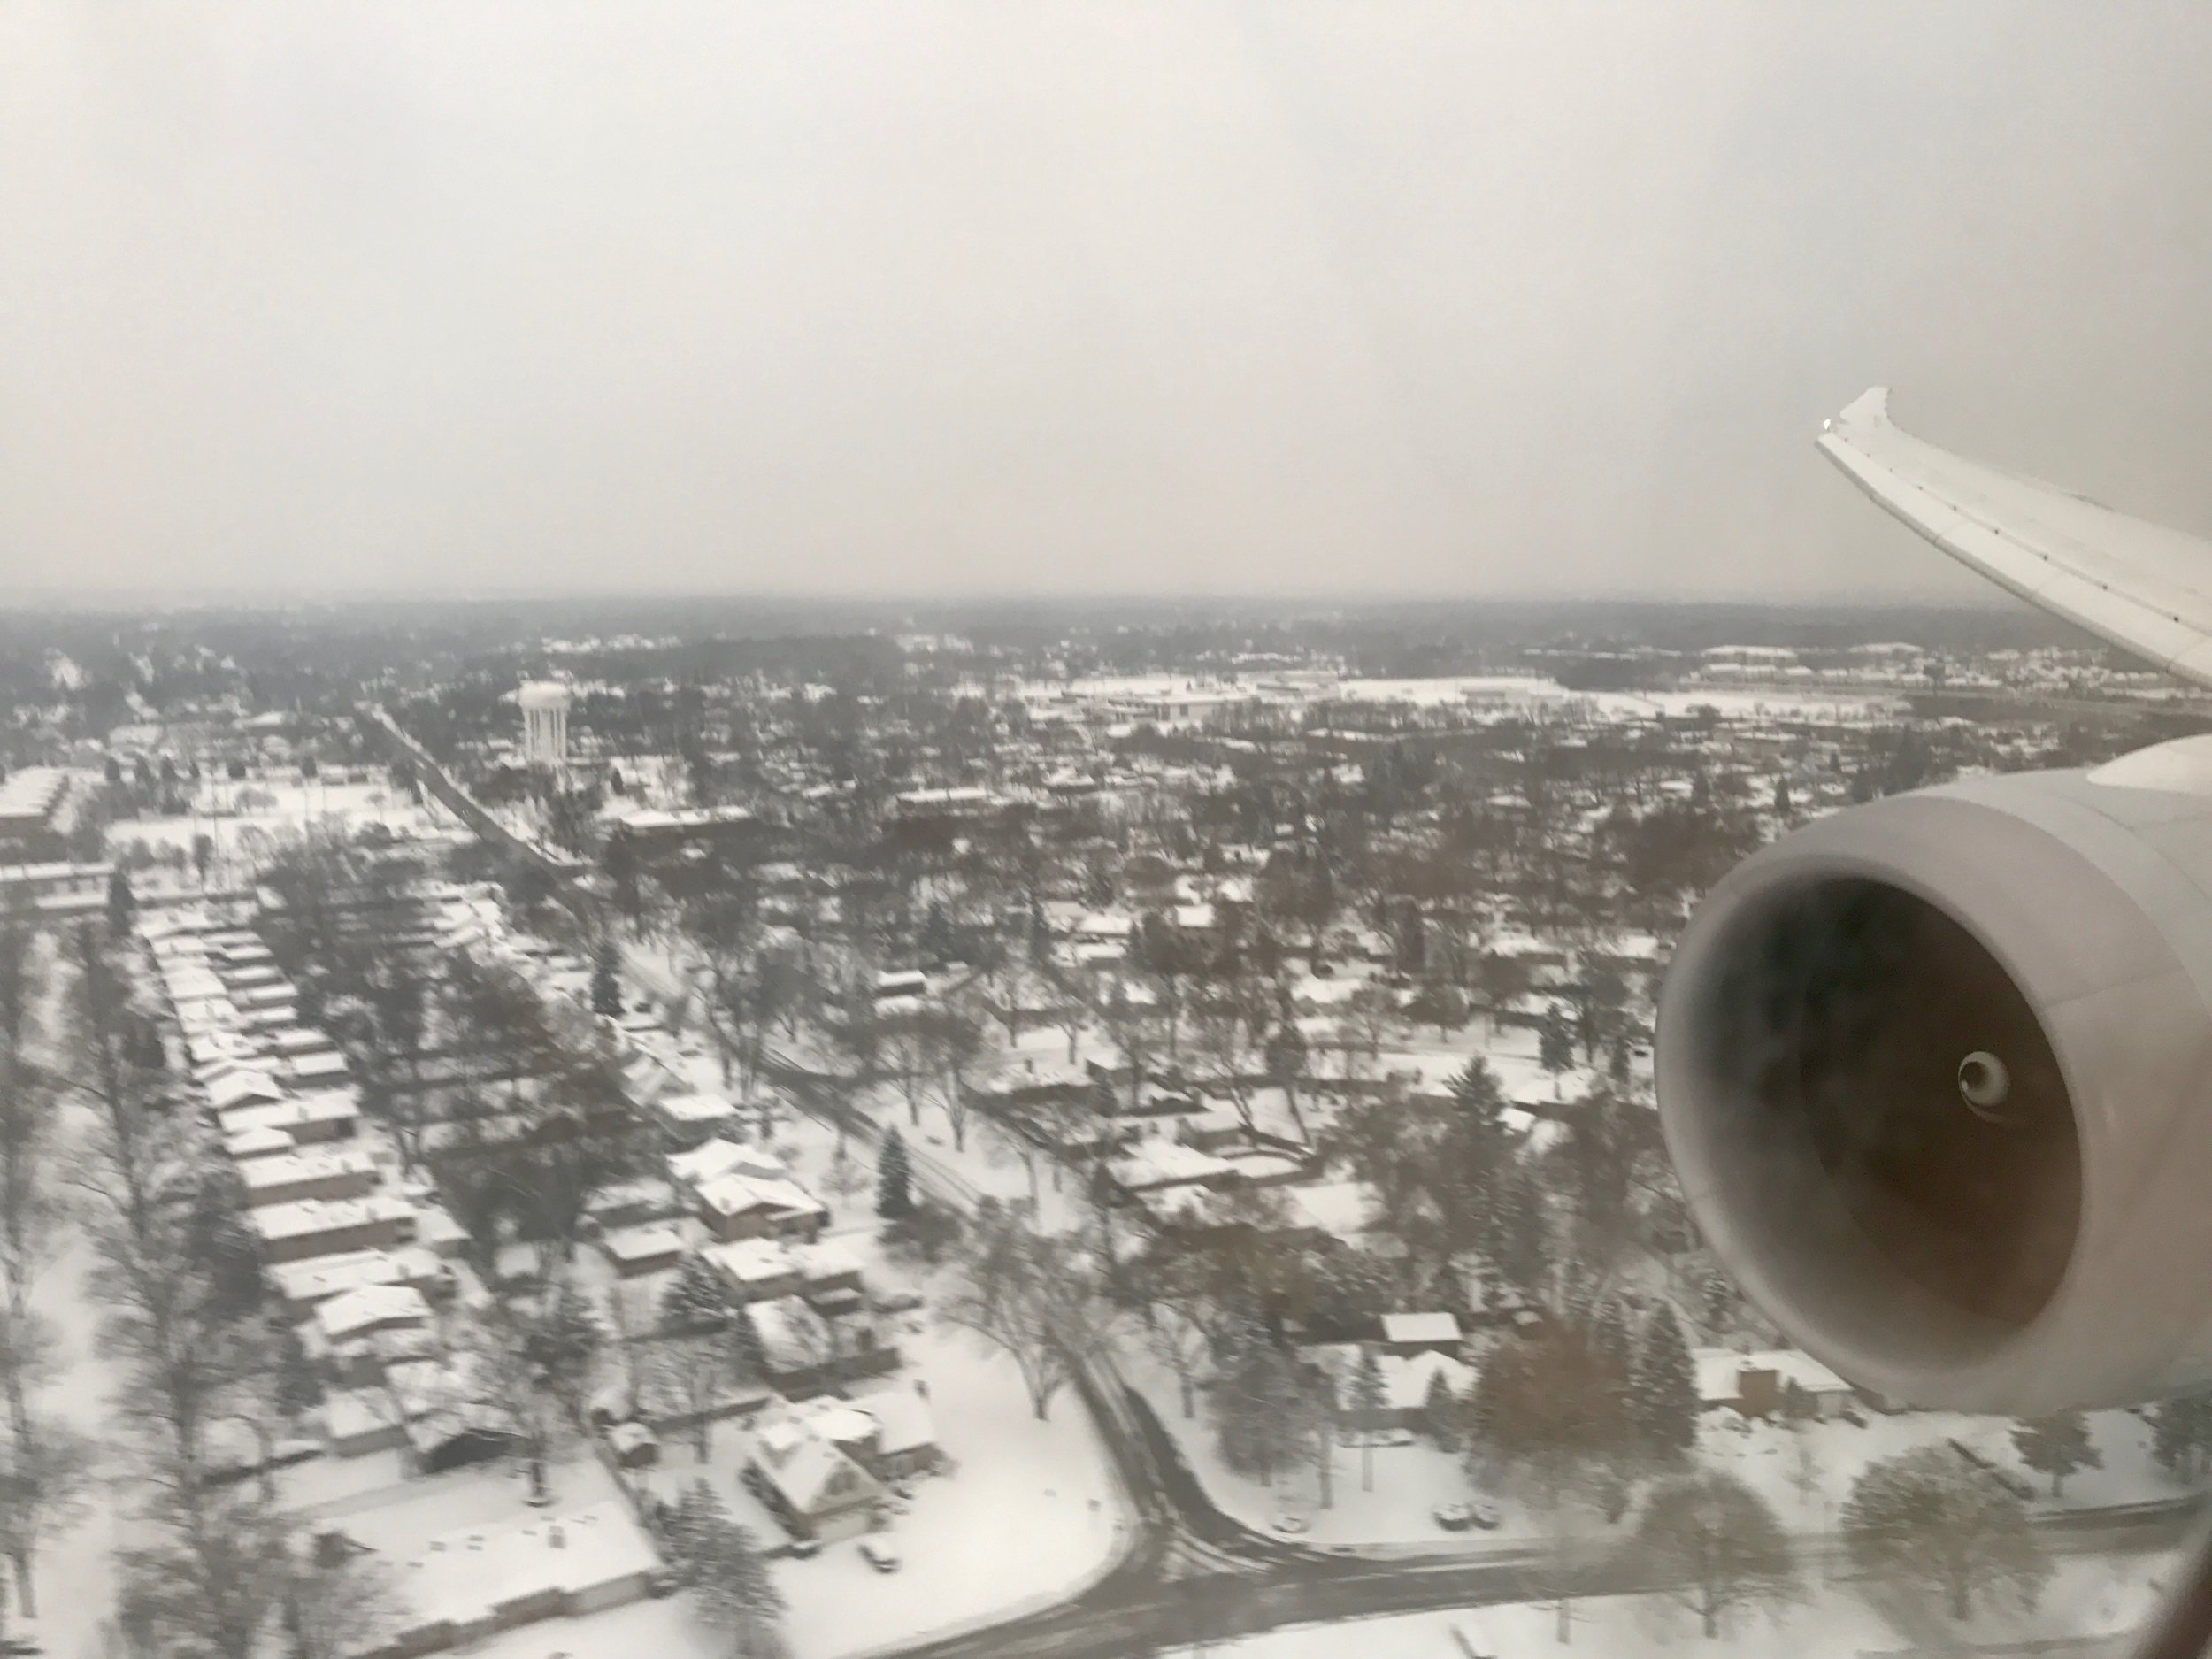 AA 186 landing in snowy Chicago